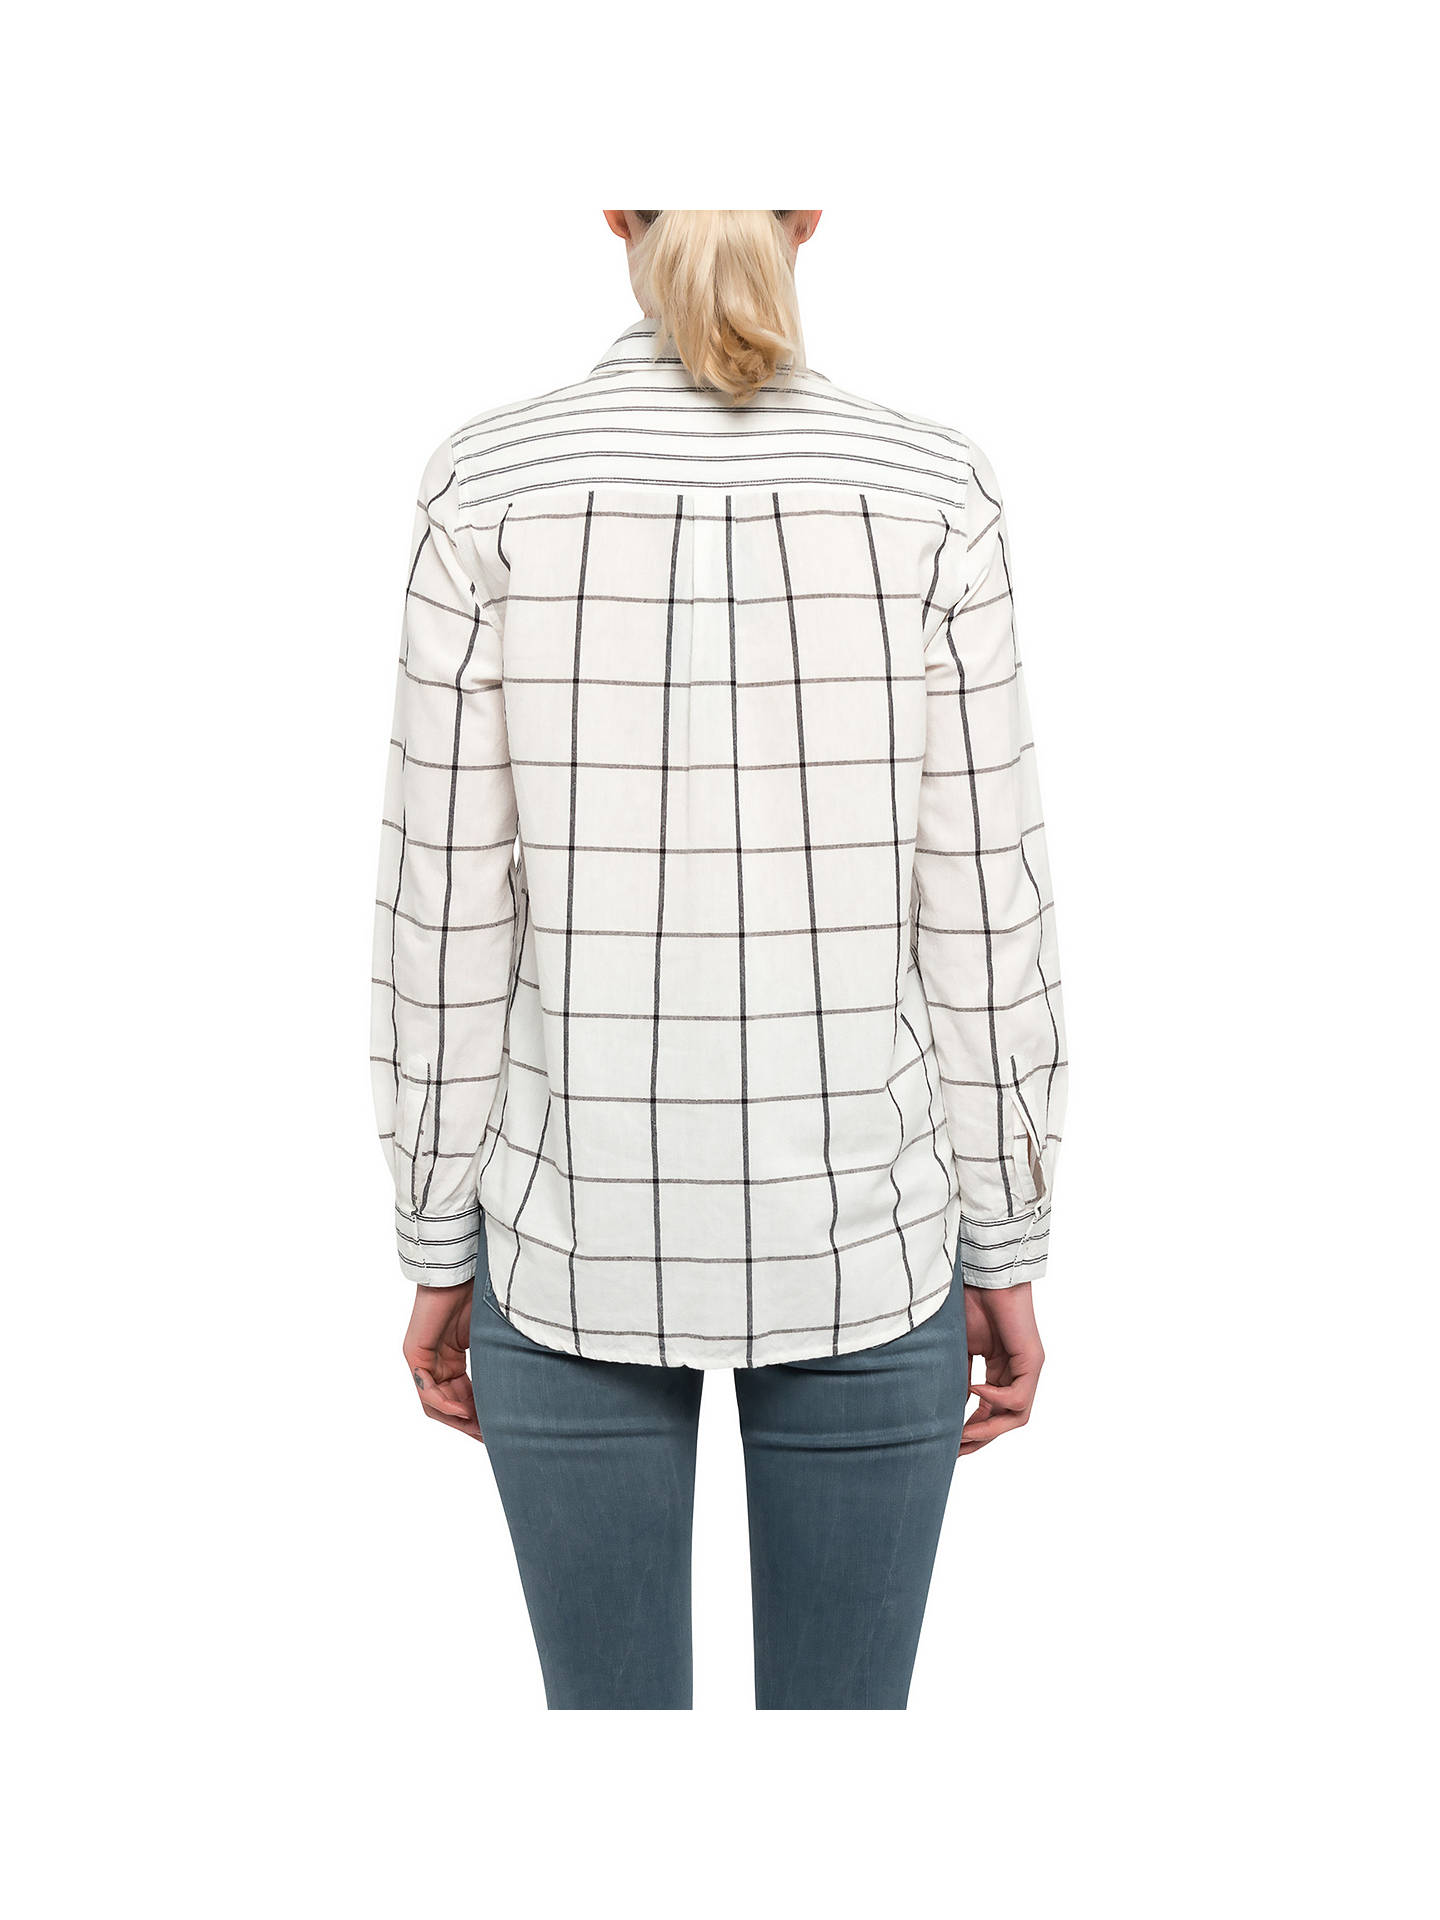 04d44b6ed59 ... Buy French Connection Maras Patchwork Shirt, Summer White/Black, 6  Online at johnlewis ...